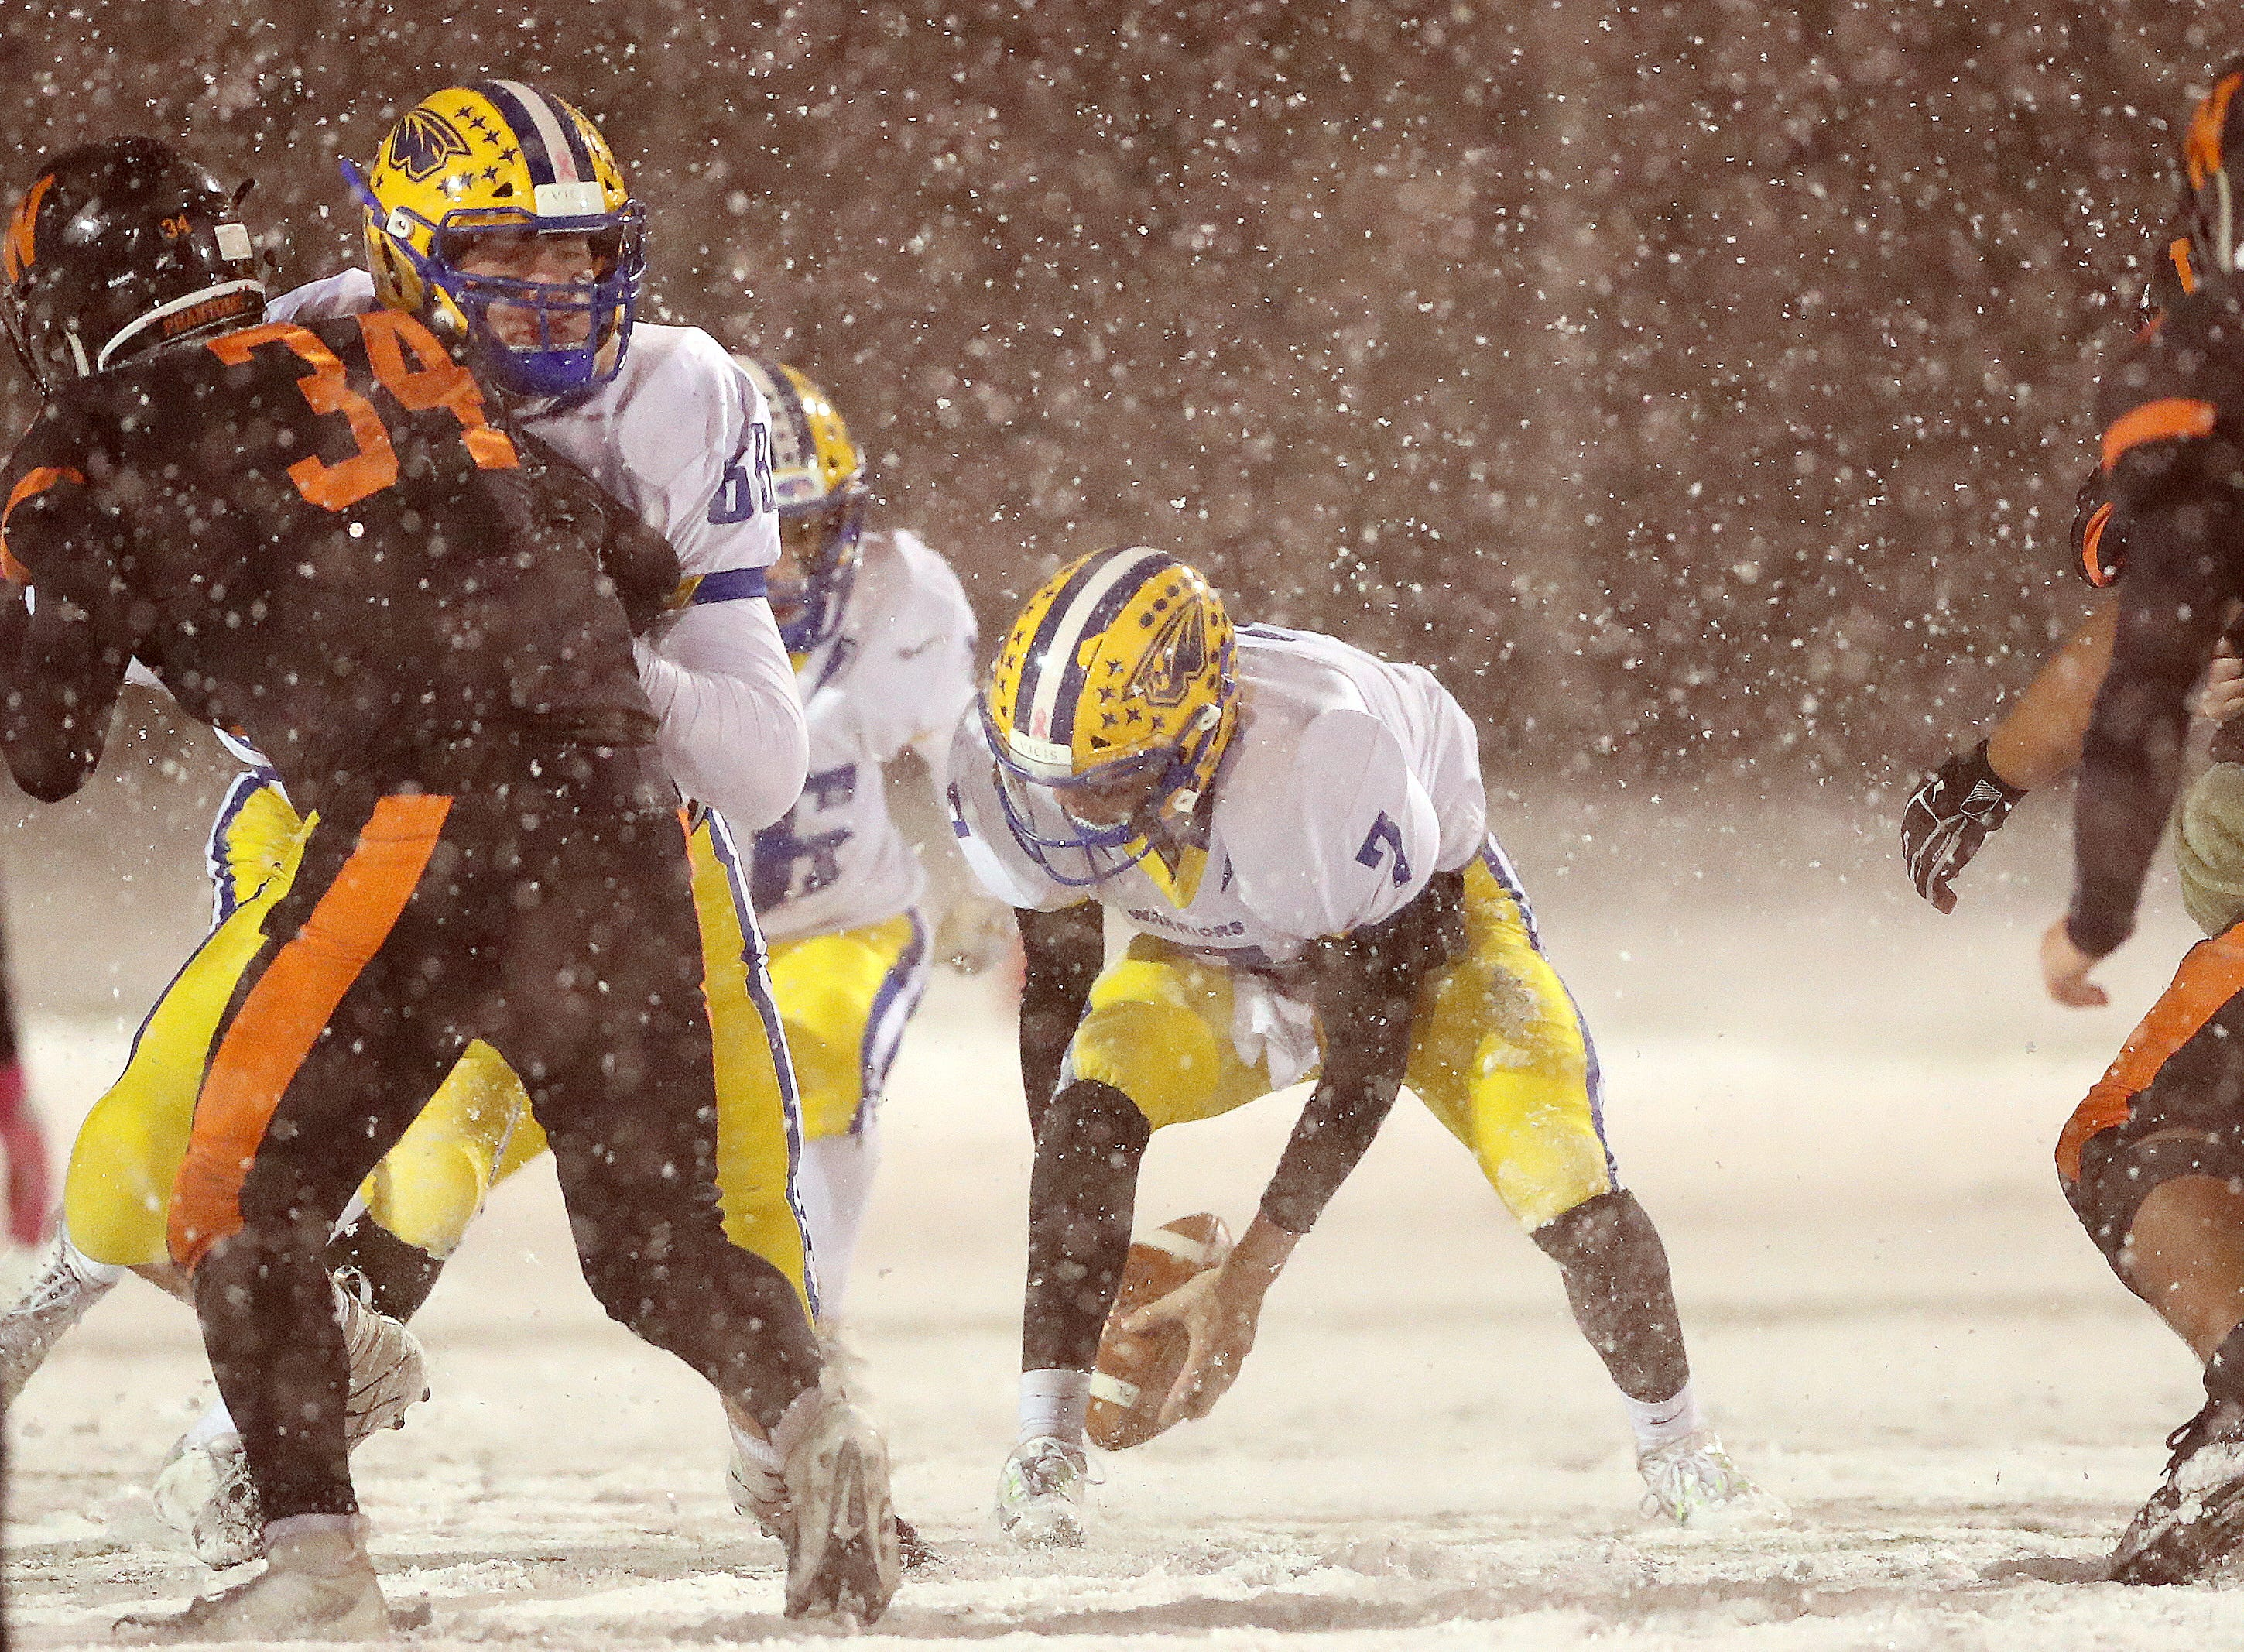 West De Pere's defense closes in on Rice Lake's Peyton Buckley as he fumbles in the heavy snow in the Division 3 Level 4  WIAA playoffs Friday, November 9, 2018 at DC Everest in Weston, Wis.